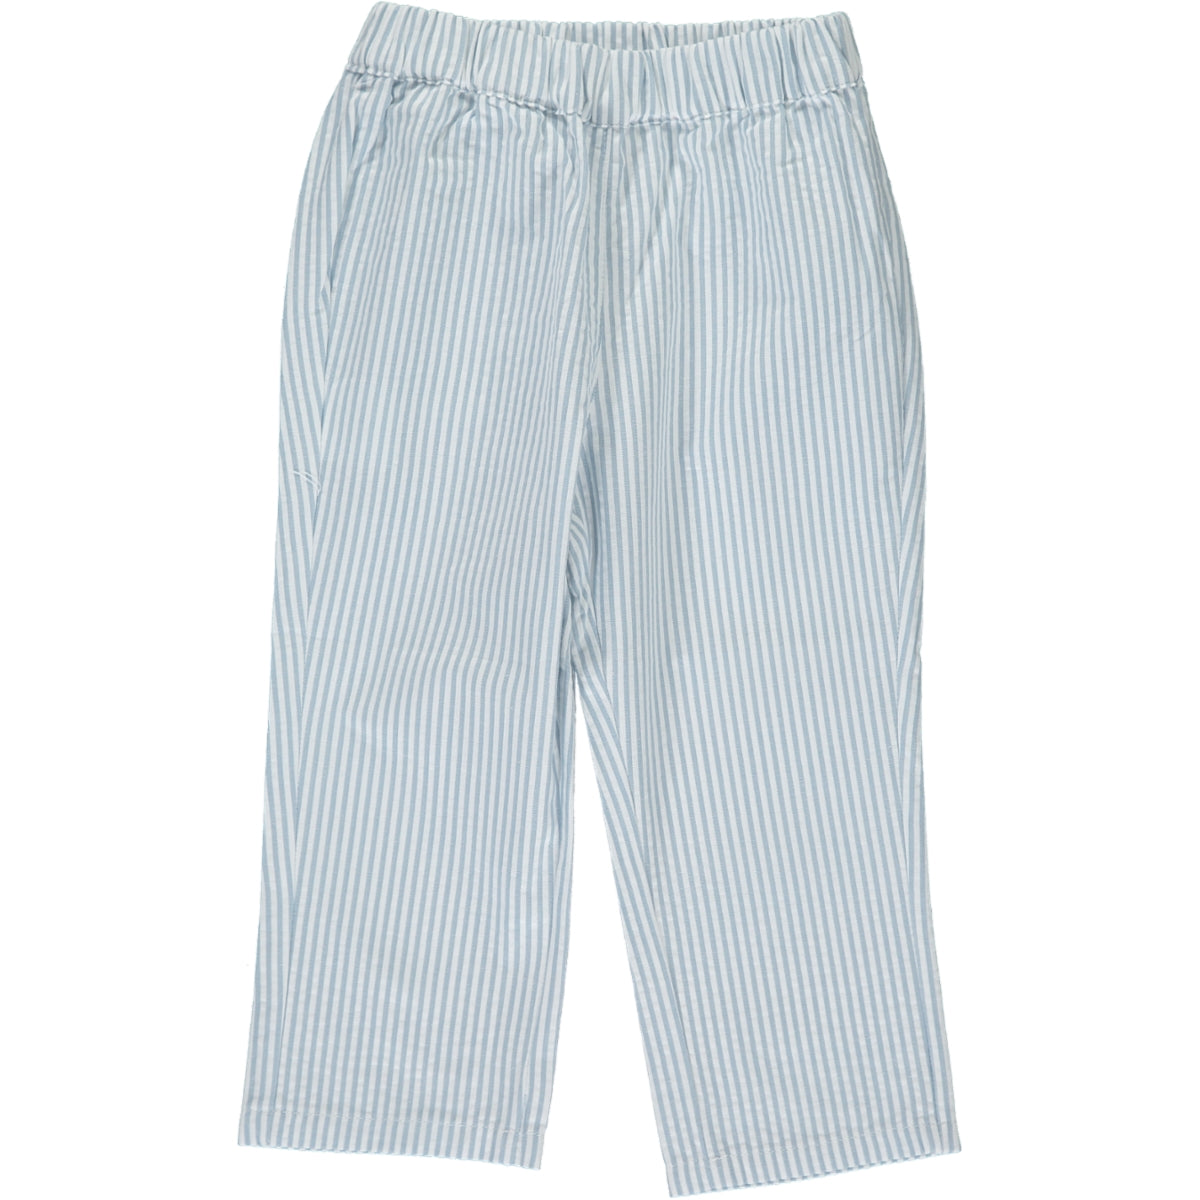 Tito Trousers White/Grey Stripe